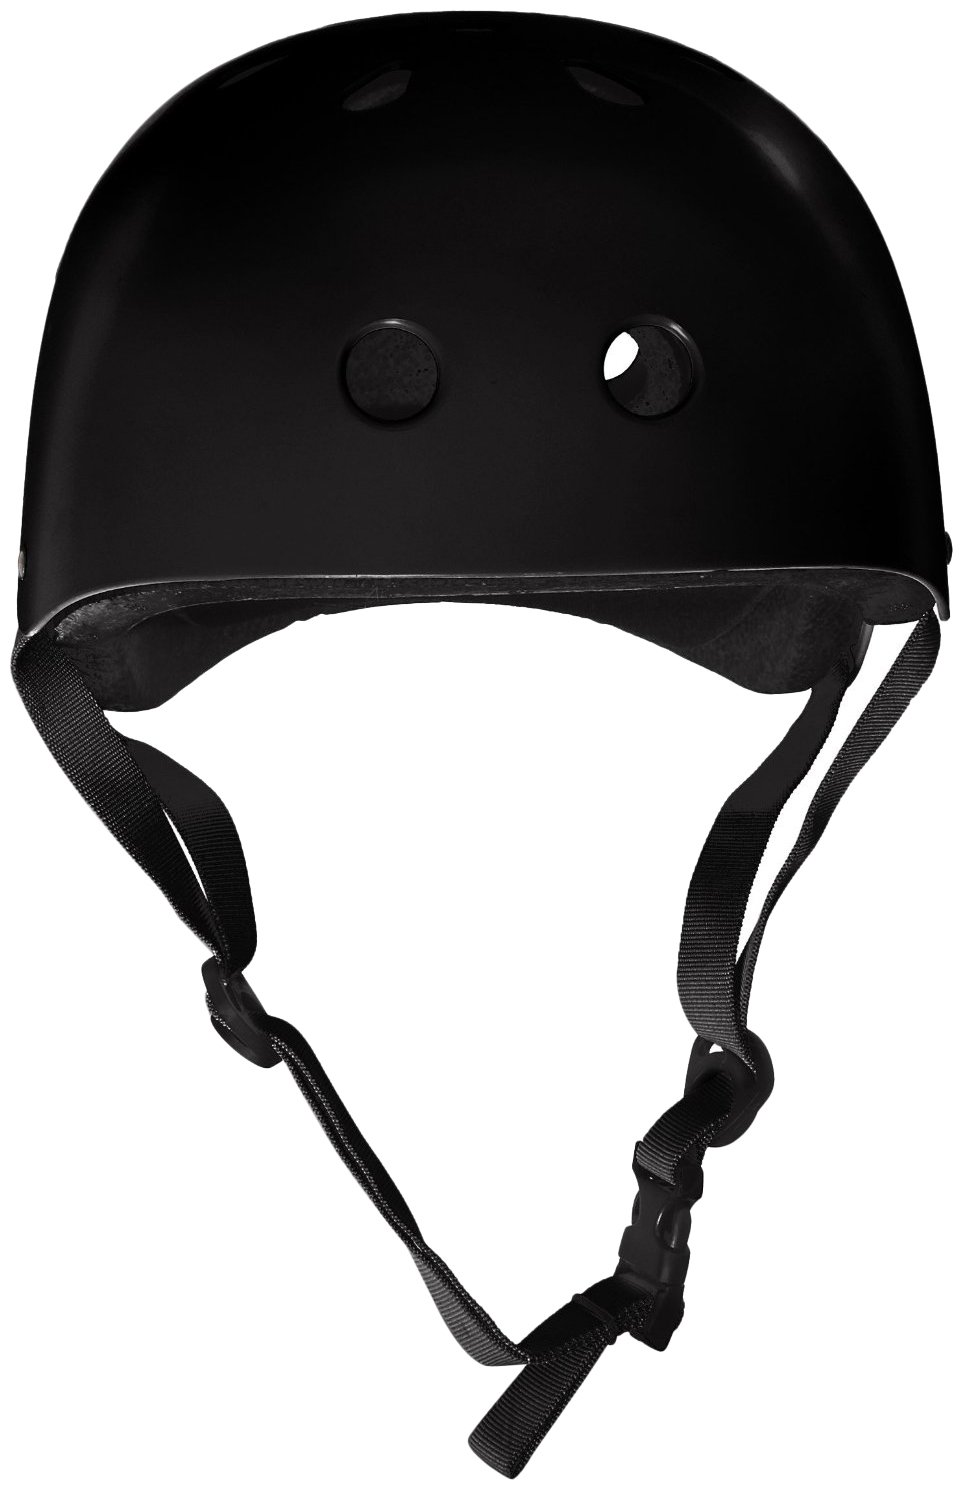 Krown Black Shell with Black Strap Skateboard Helmet KRHEL-YBLK